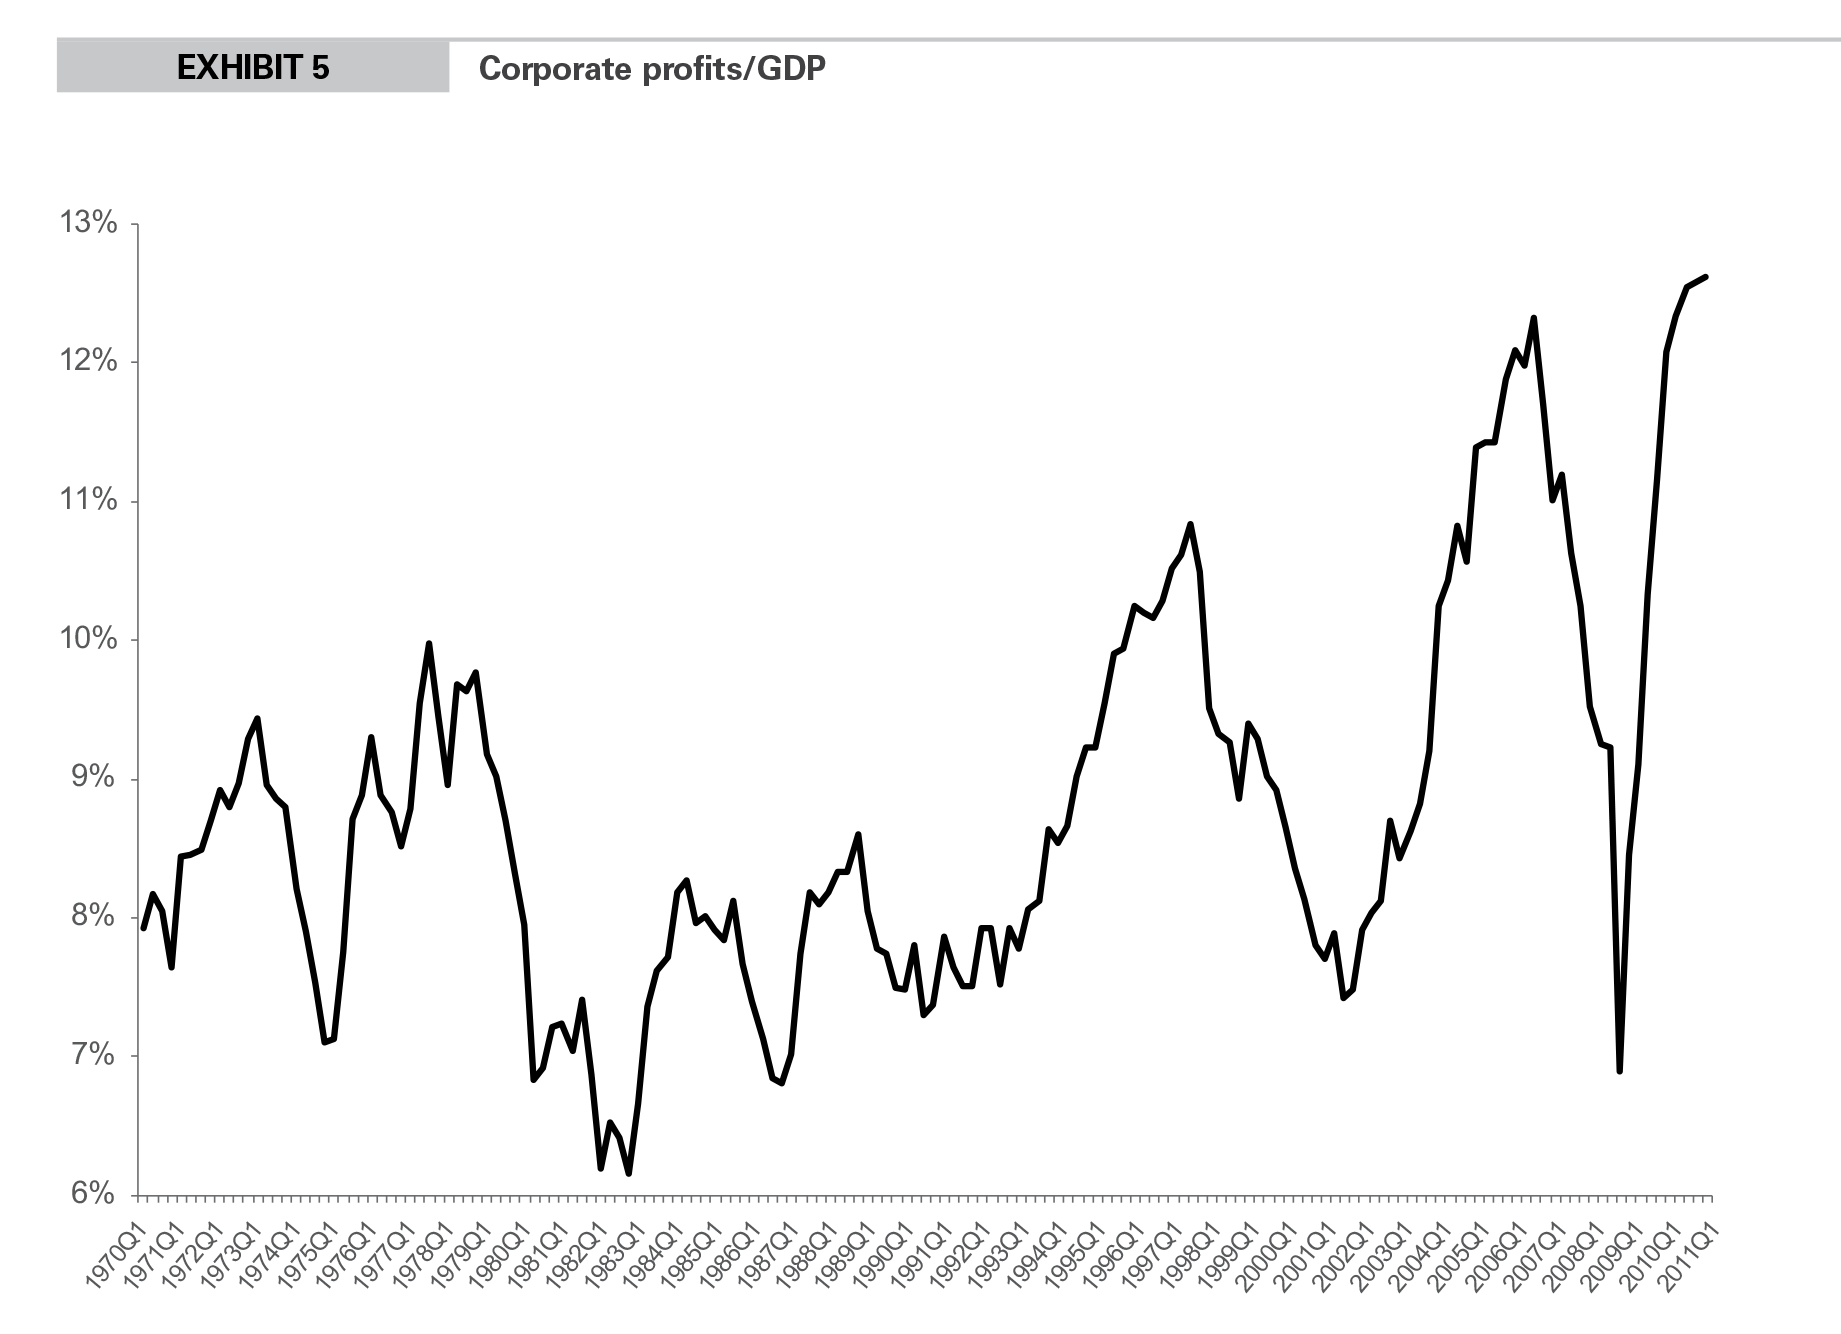 EXHIBIT 5 Corporate profits/GDP